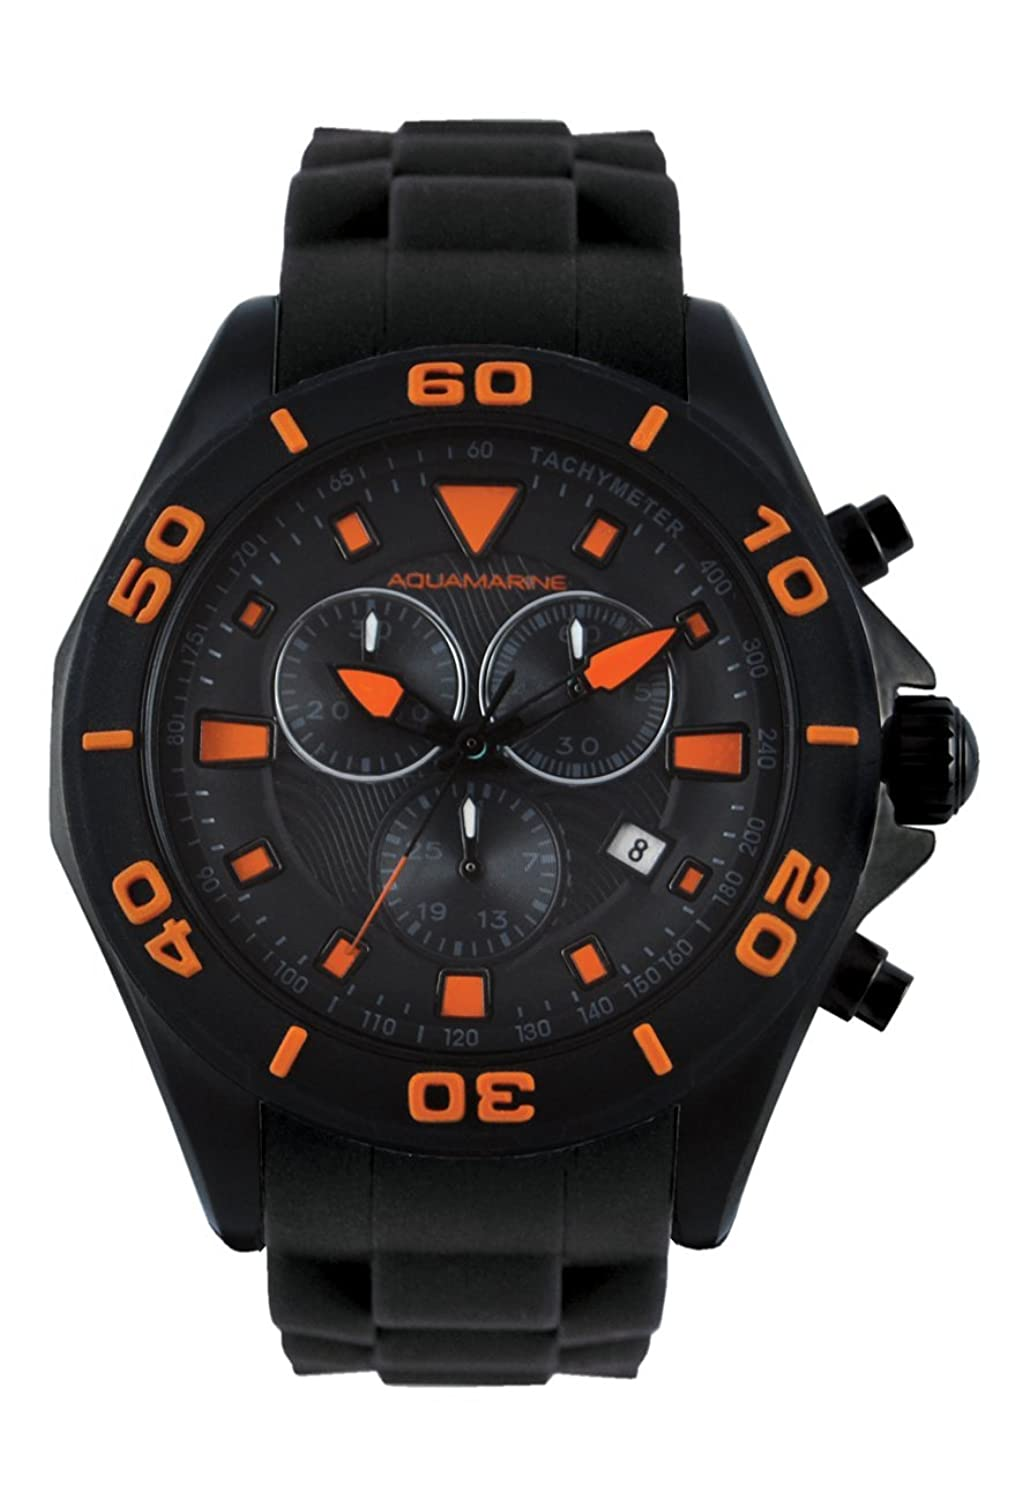 Aquamarine Herrenuhr Chrono schwarz-orange – Kollektion Summer 2016